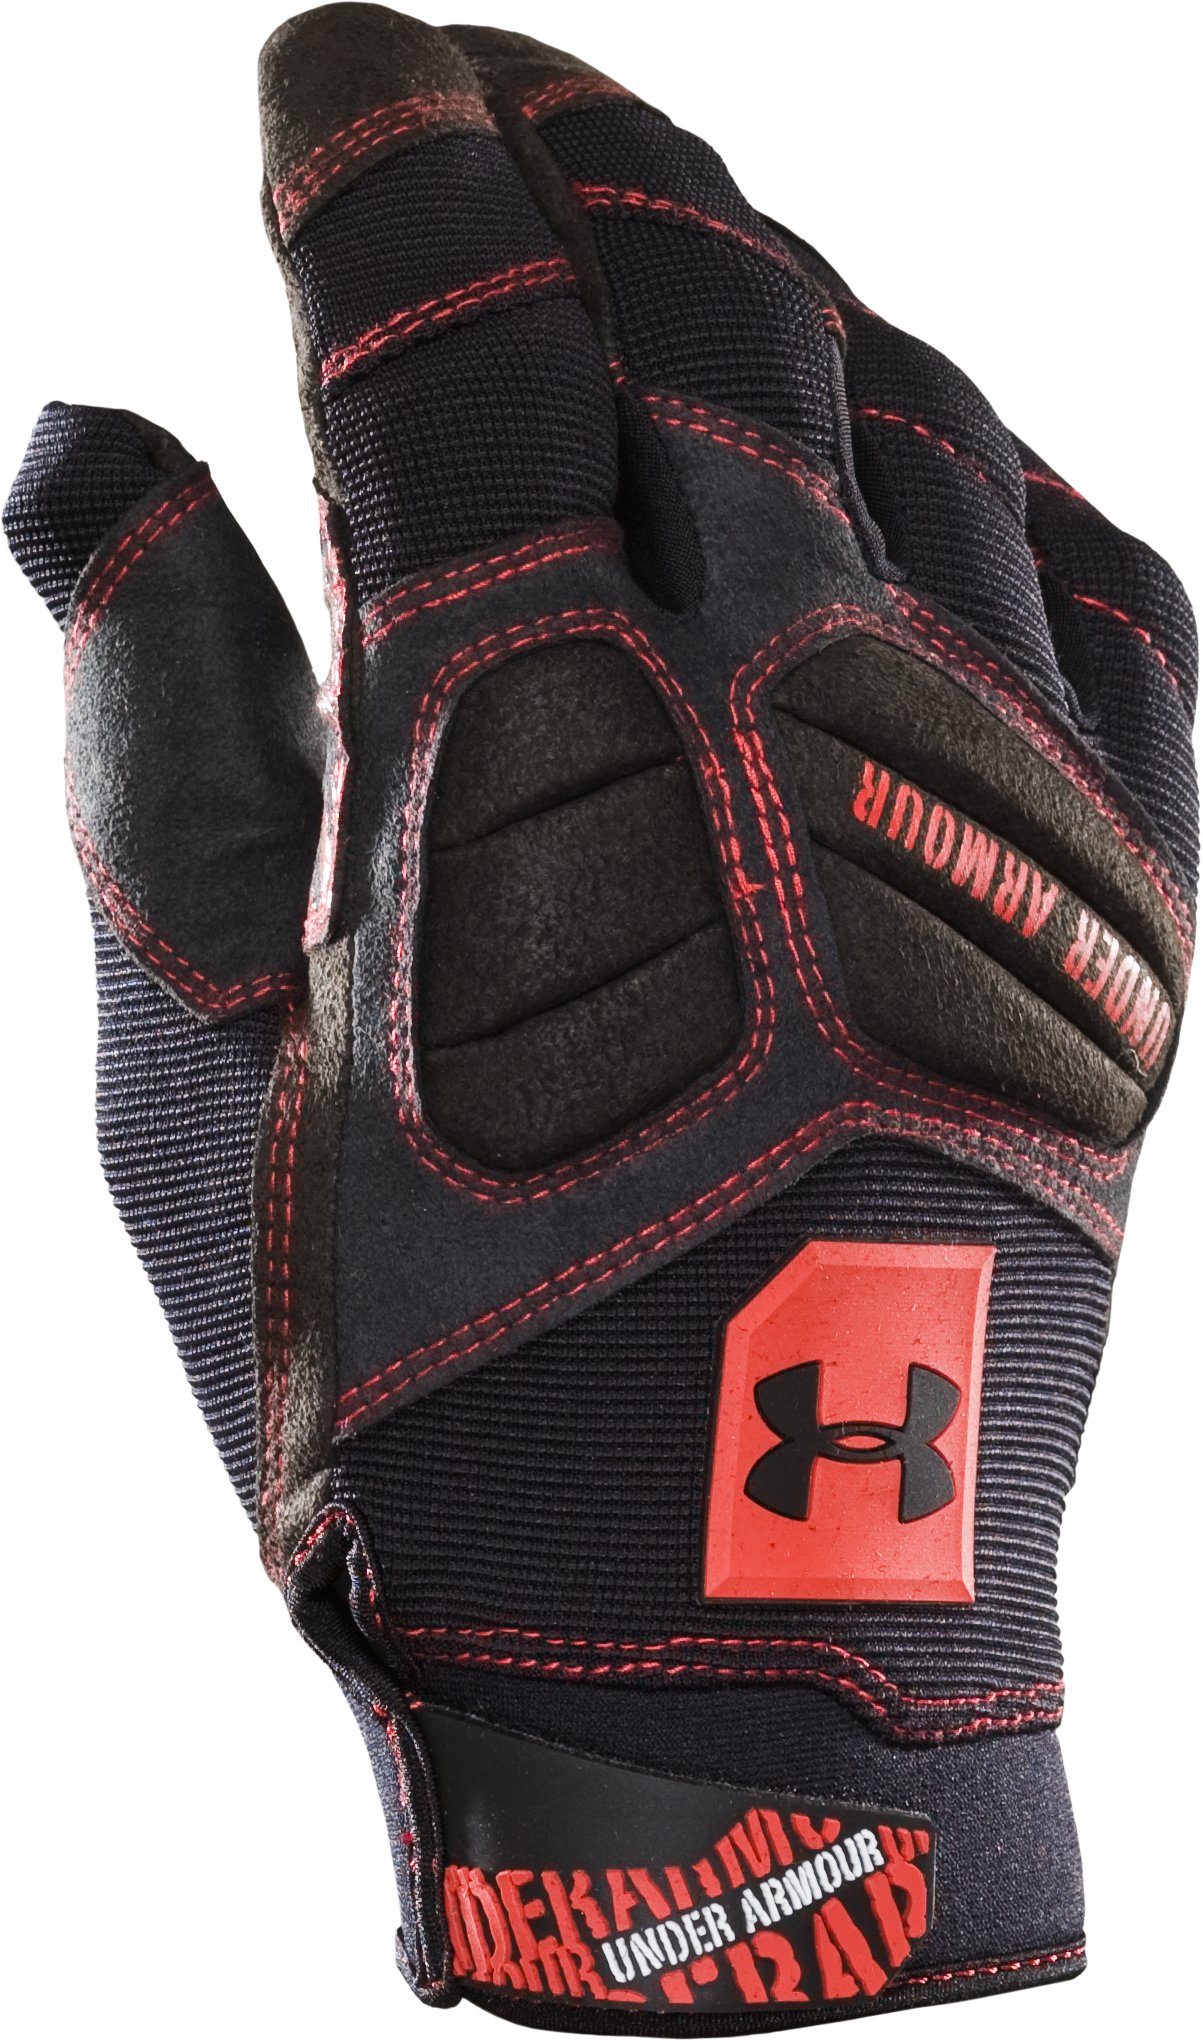 Men's High Impact Gloves, Black ,